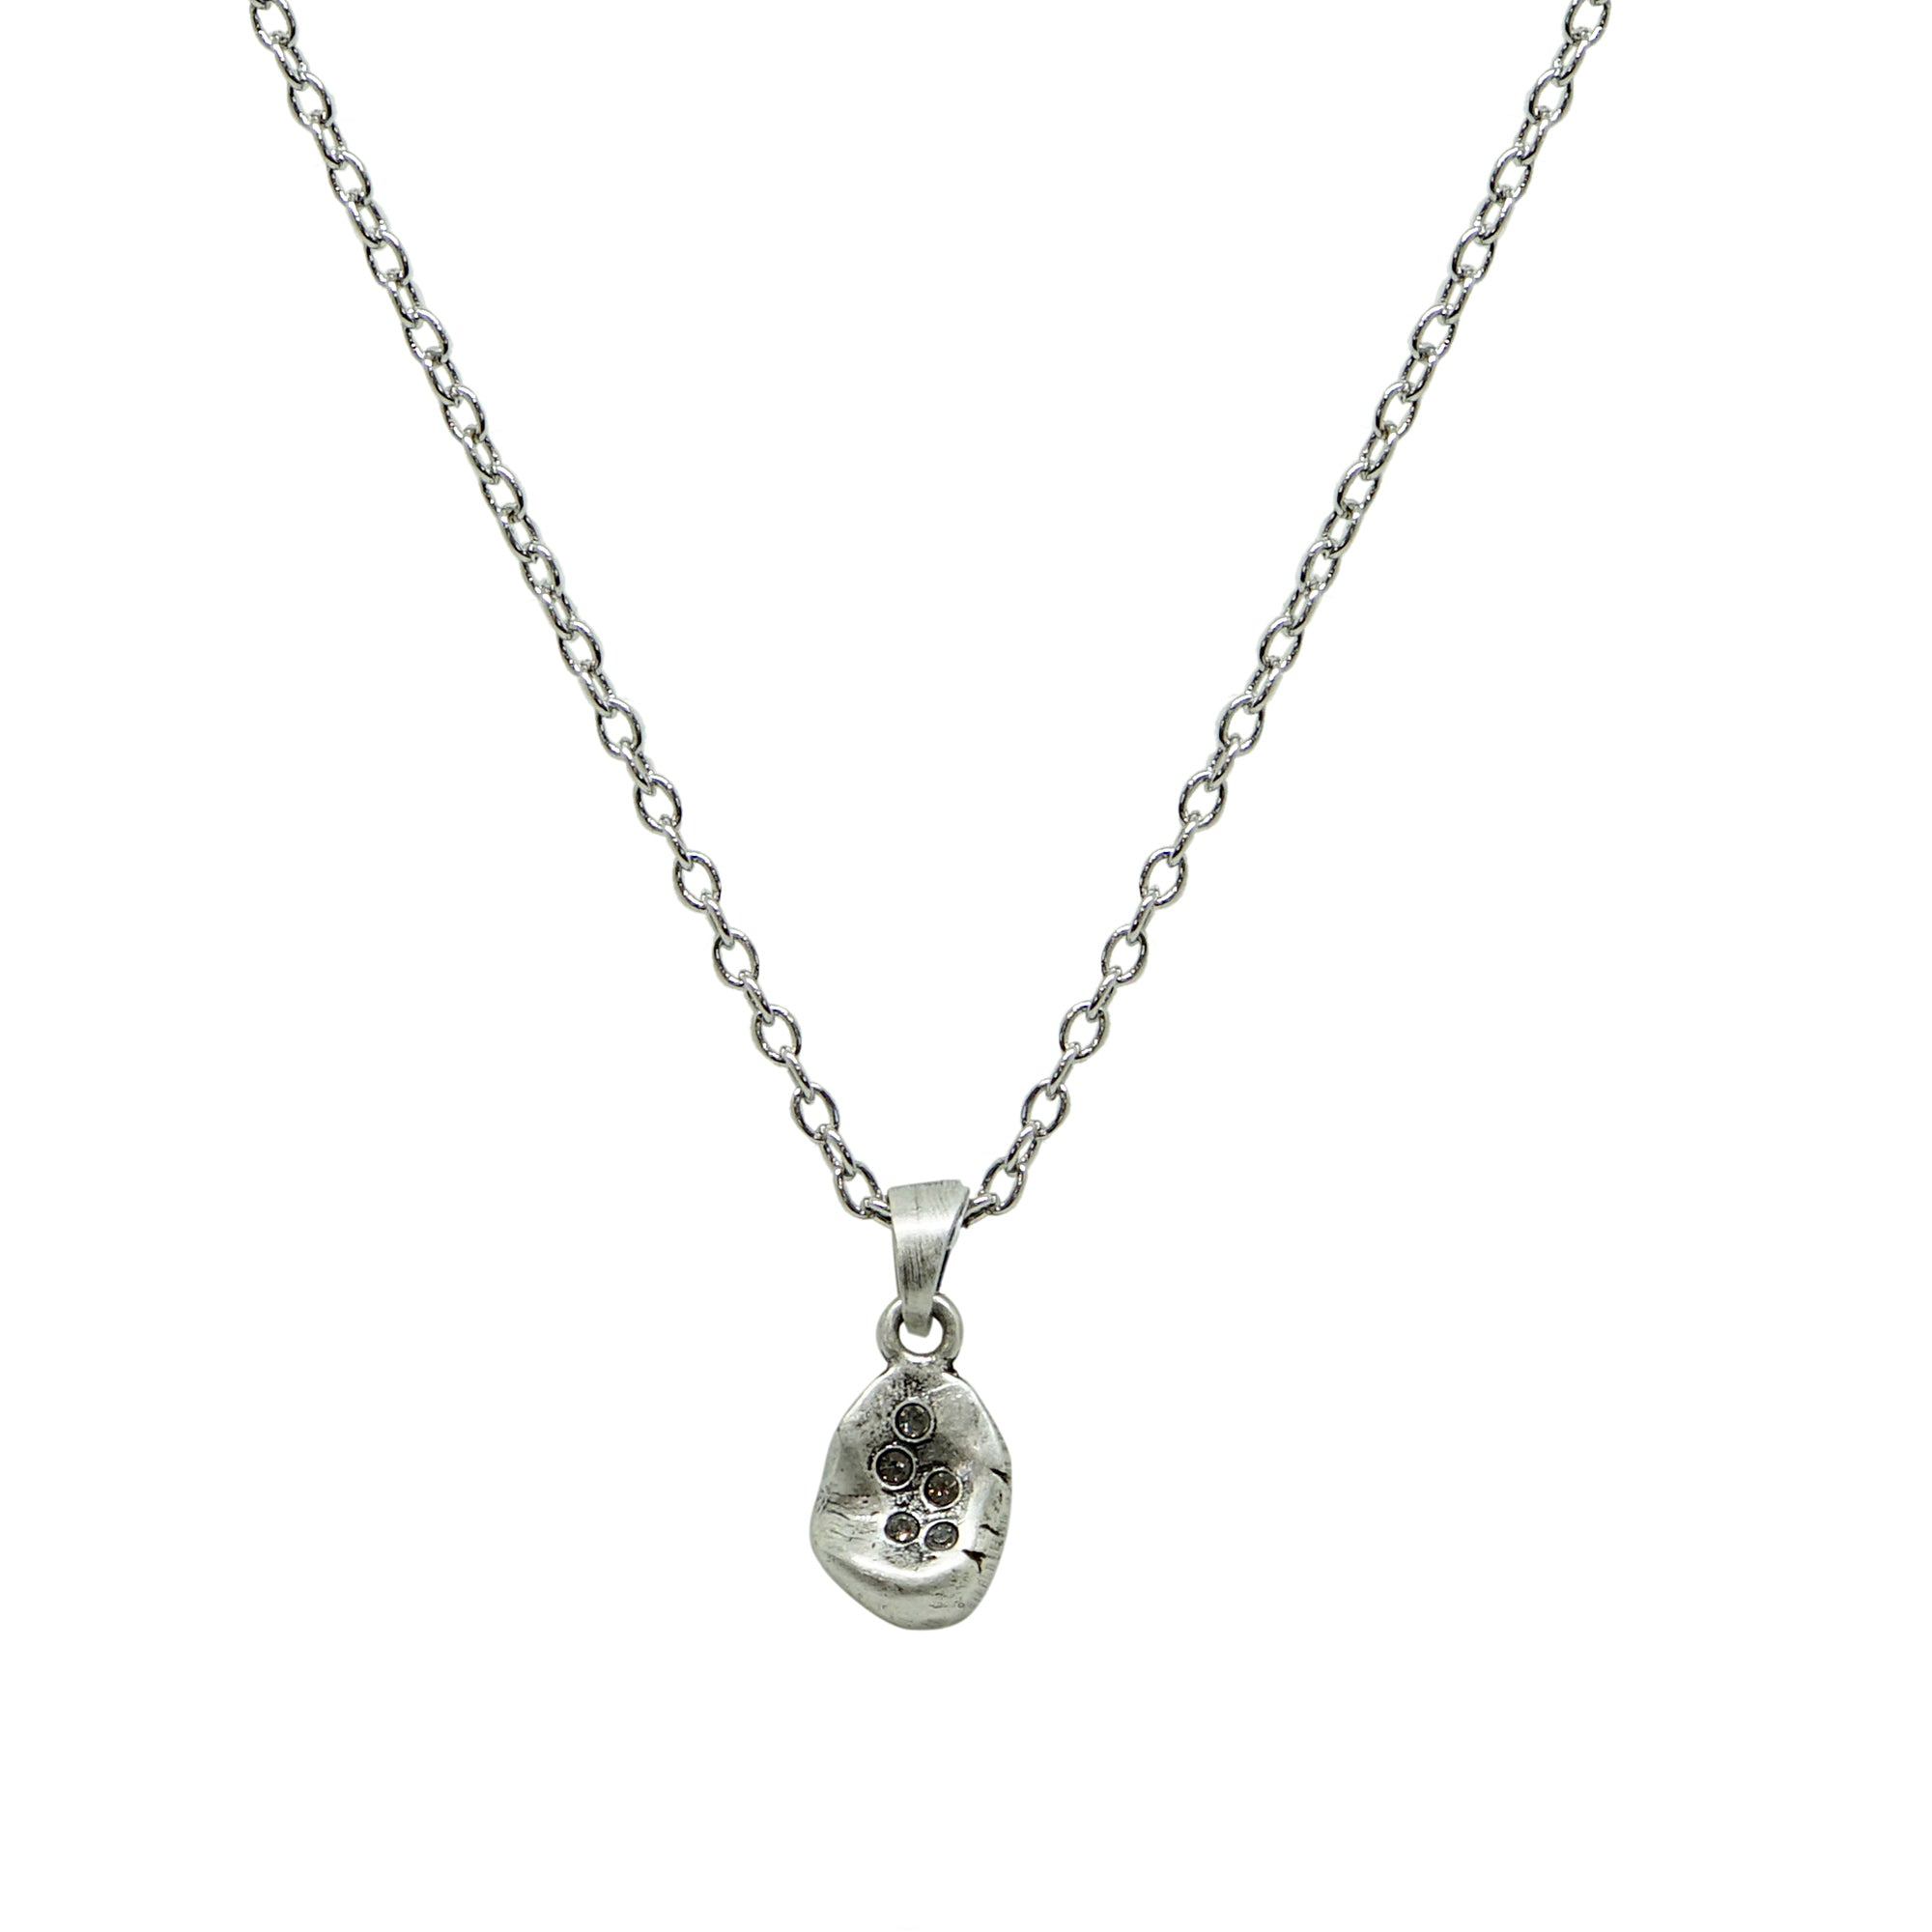 VINTAGE SILVER ROUND IMPRESSION NECKLACE